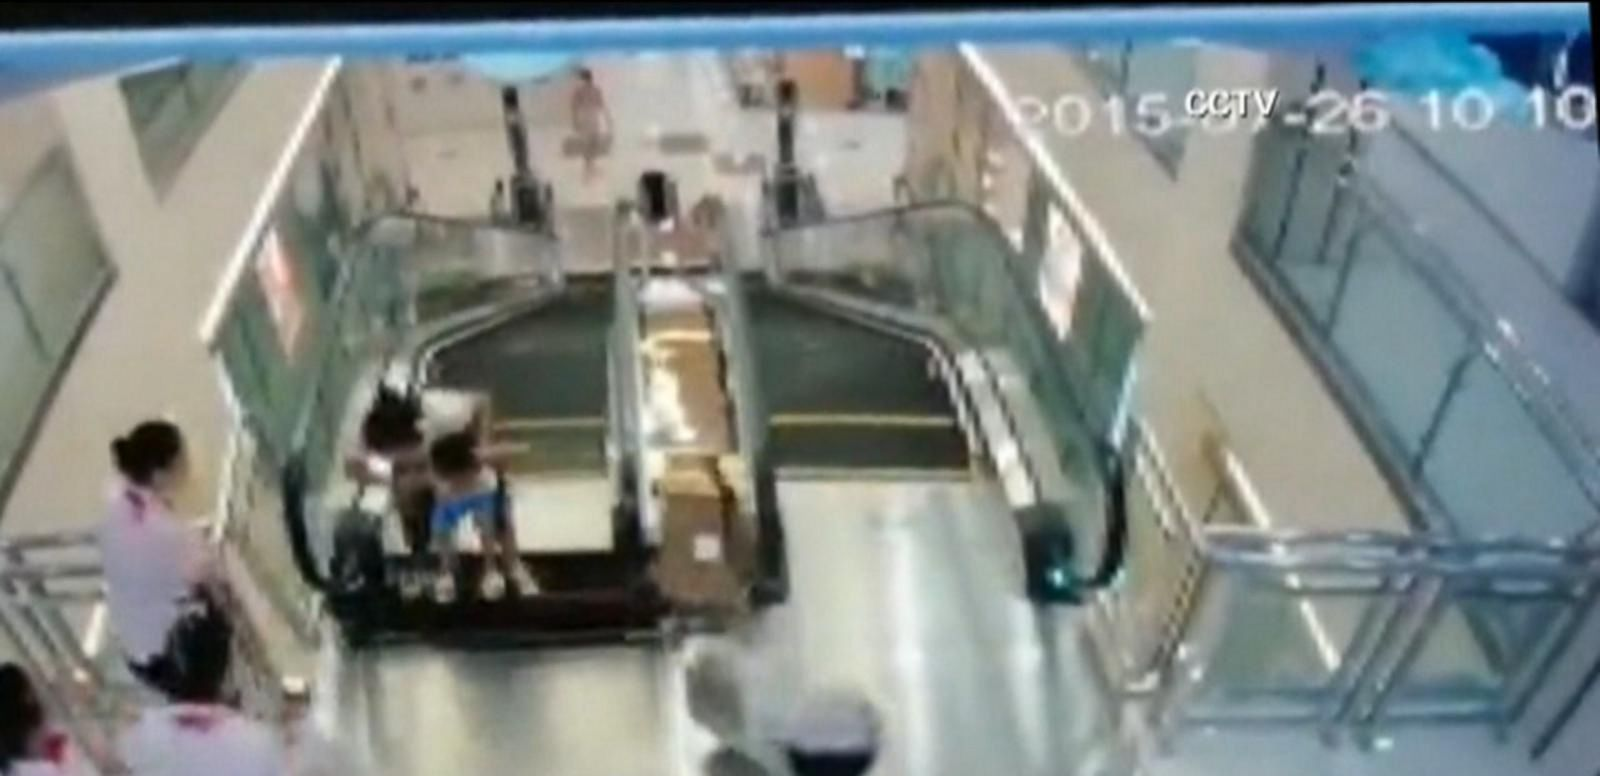 VIDEO: Chinese Woman Saves Child Before Dying in Escalator Accident